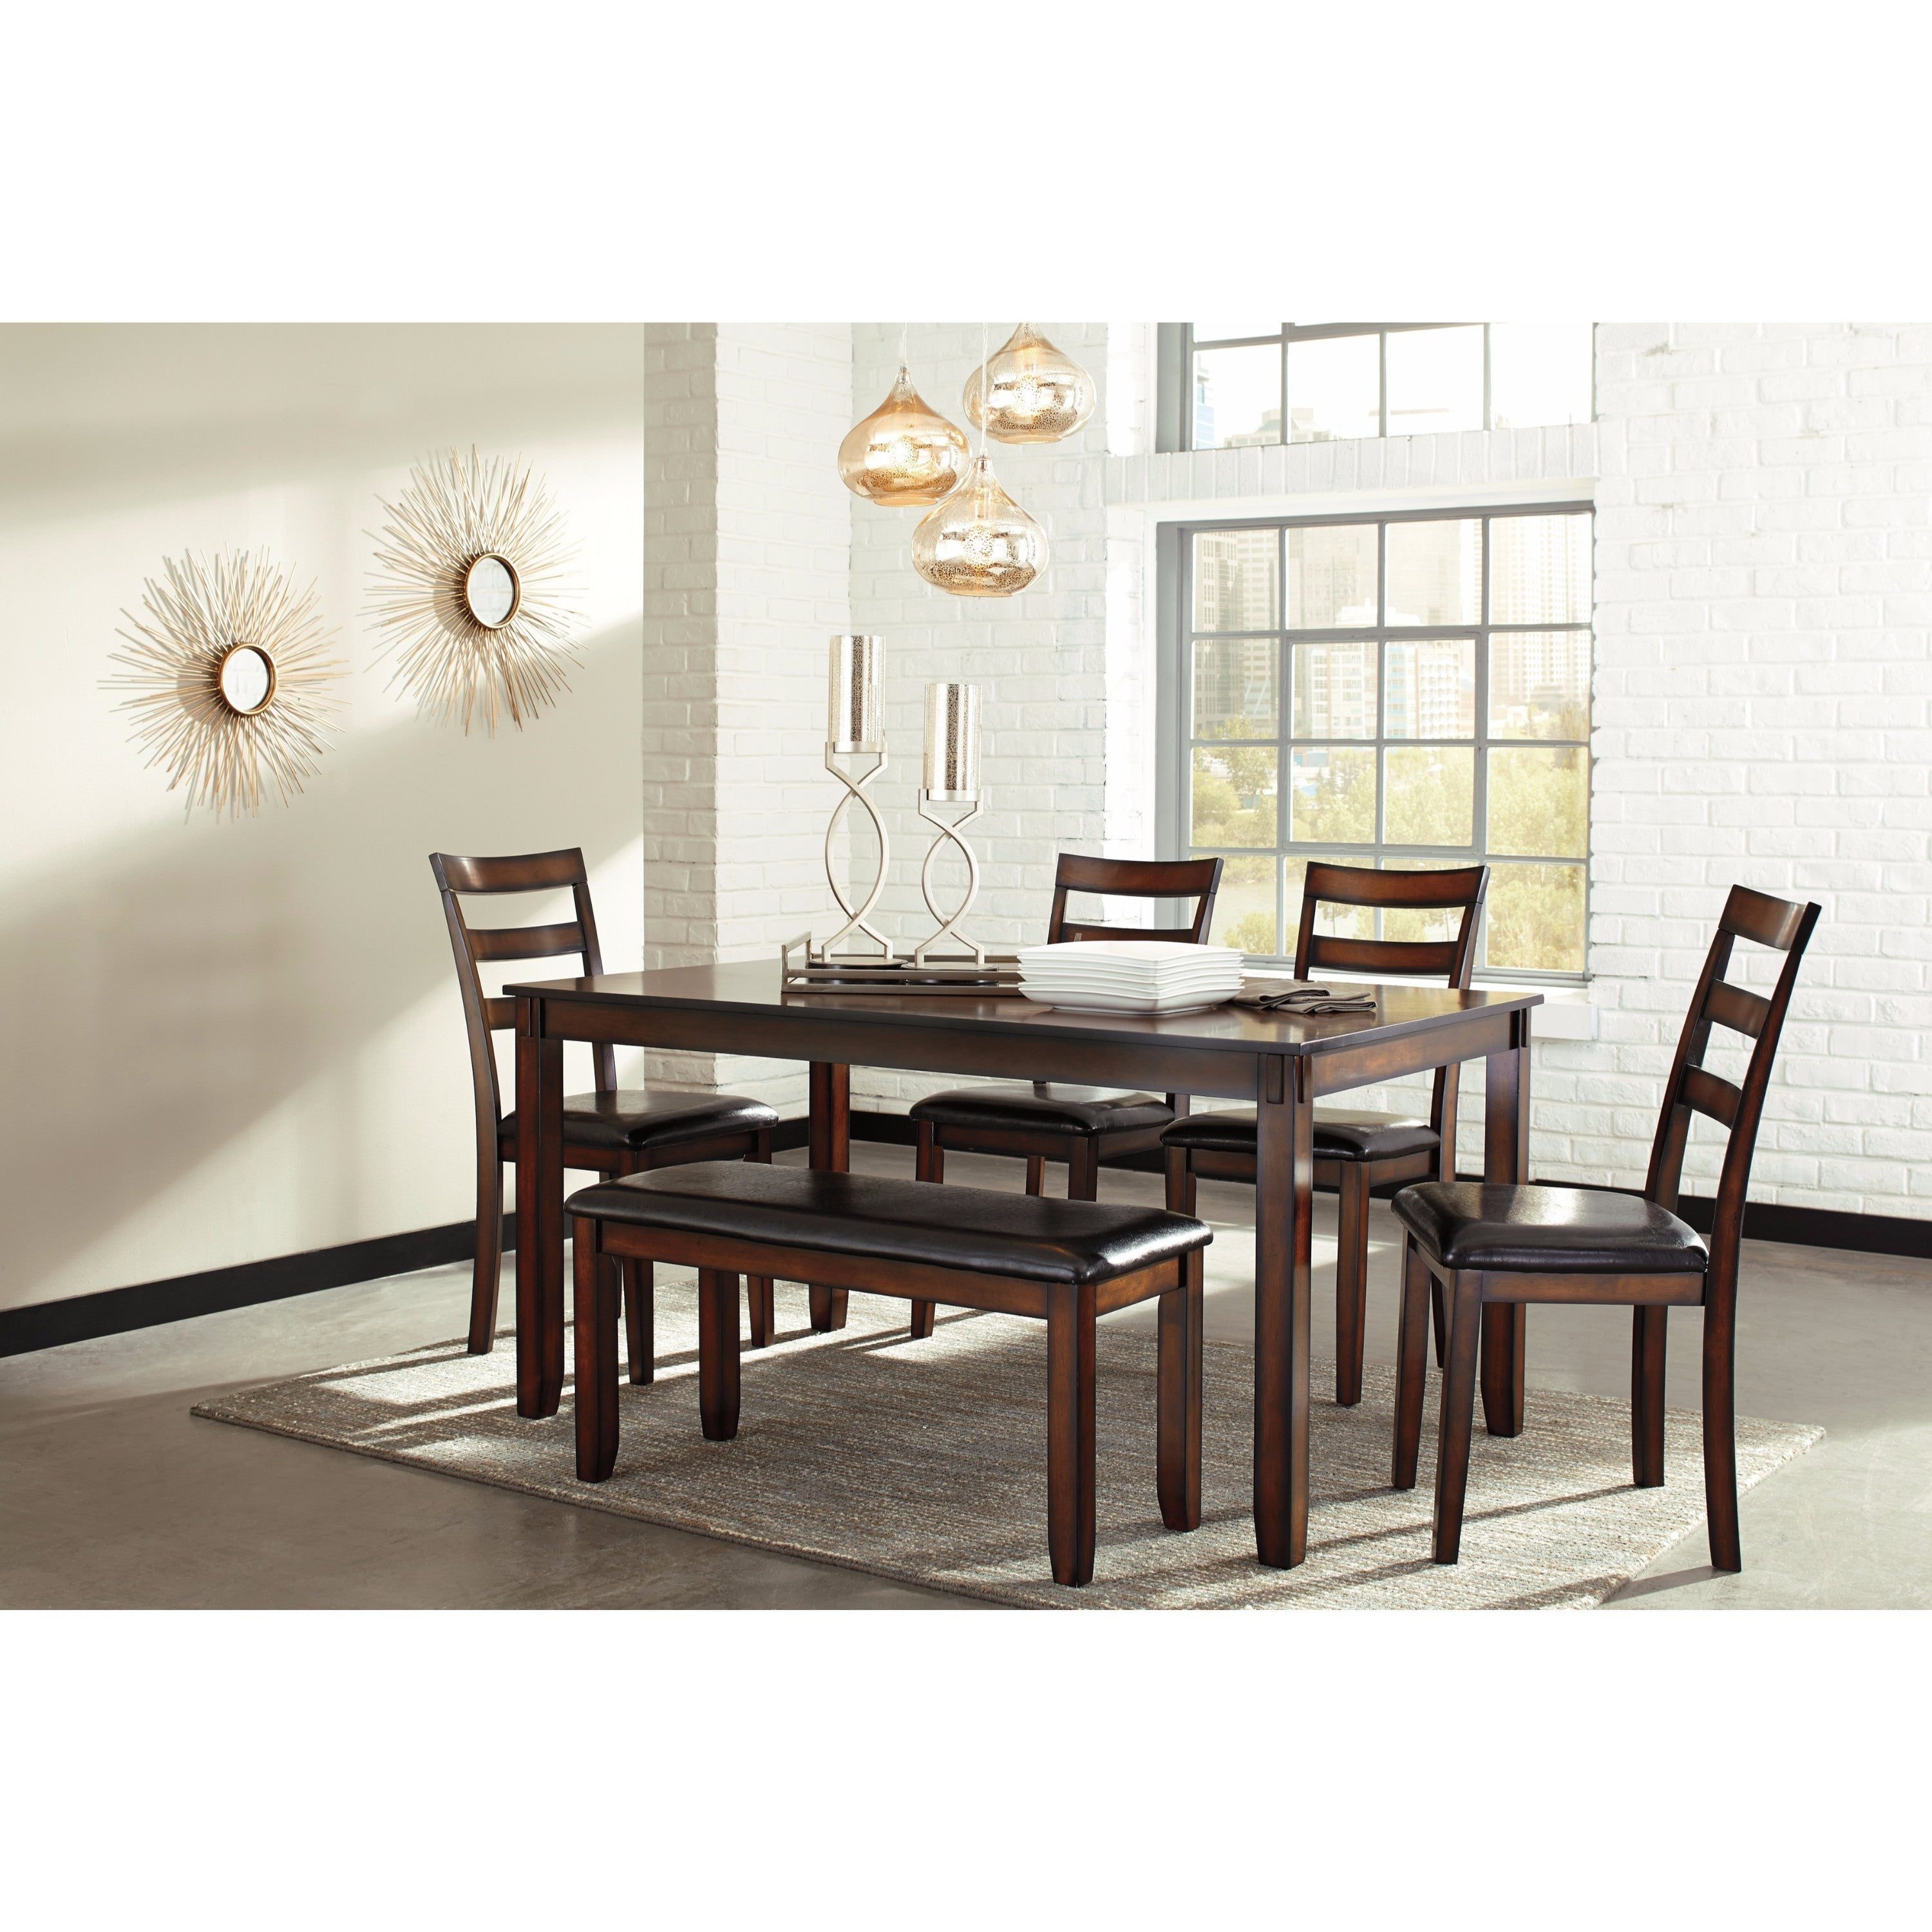 Most Current Osterman 6 Piece Extendable Dining Sets (Set Of 6) Throughout Buy 6 Piece Sets Kitchen & Dining Room Sets Online At Overstock (View 7 of 20)